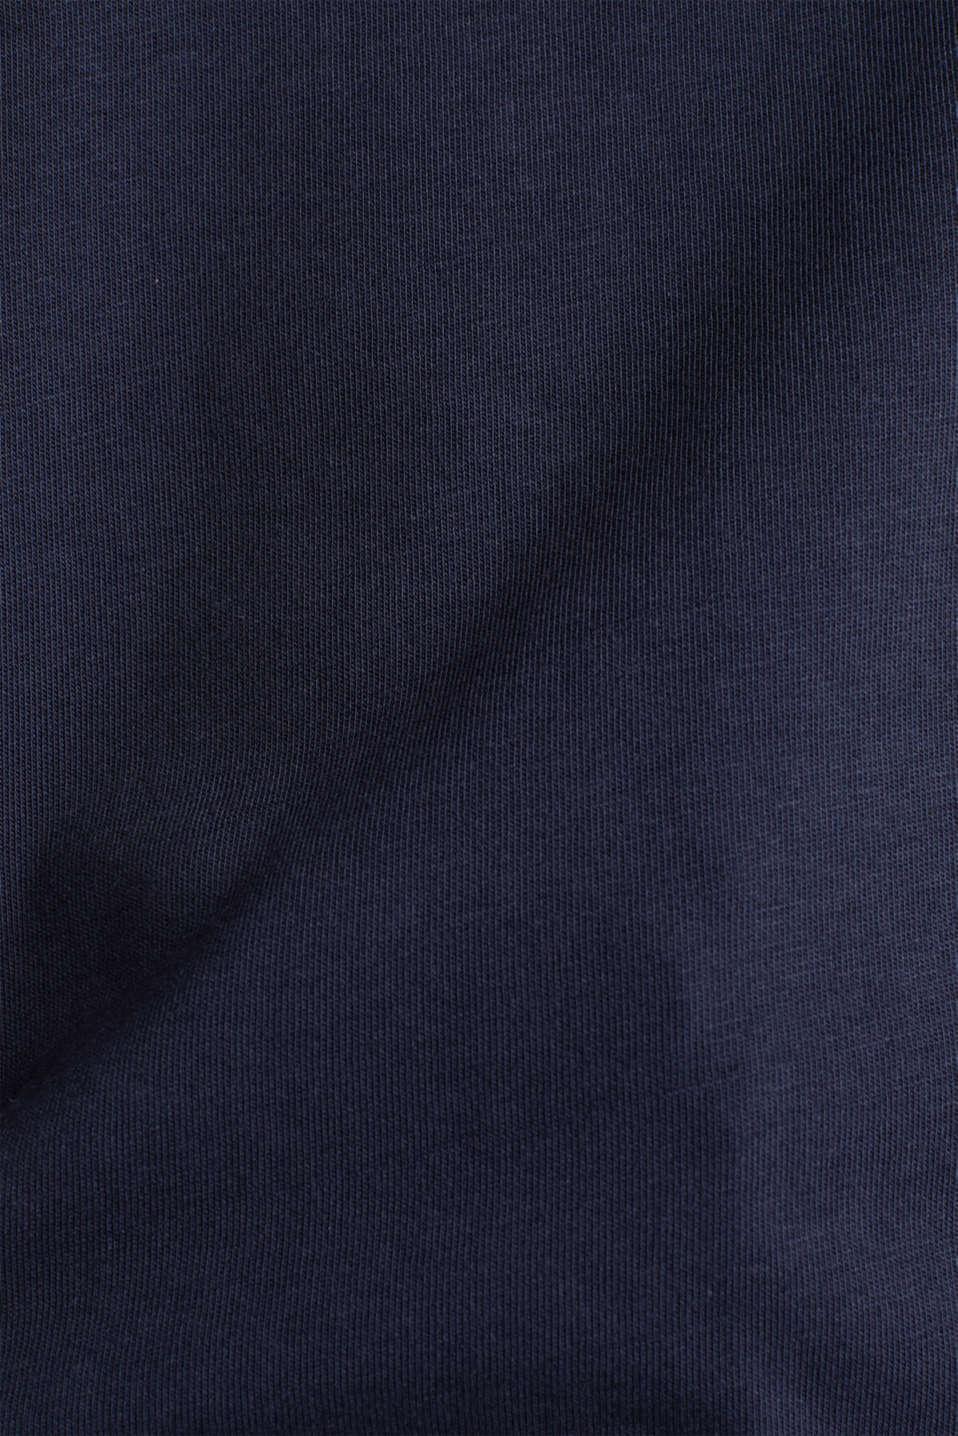 T-shirt with turn-up sleeves, NAVY, detail image number 4